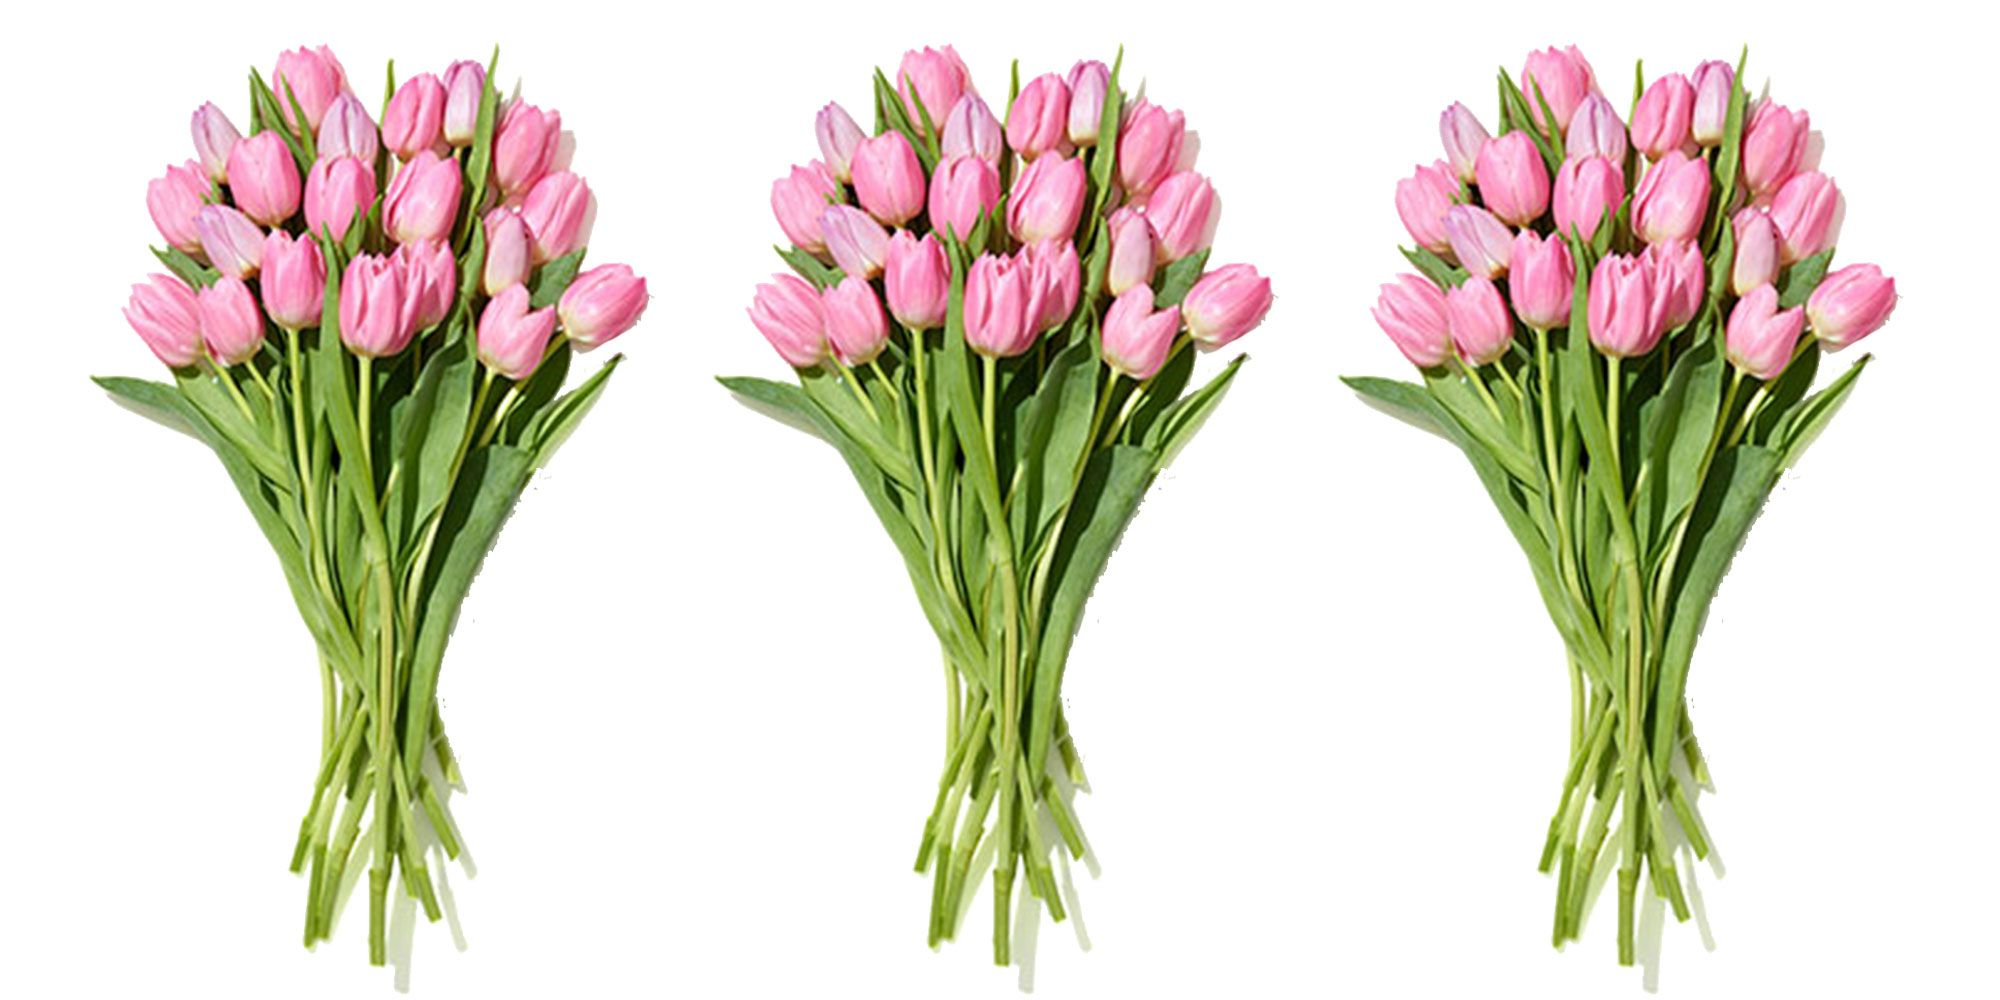 Whole Foods Is Selling A 20-Stem Bunch Of Tulips For Just $10 This Week